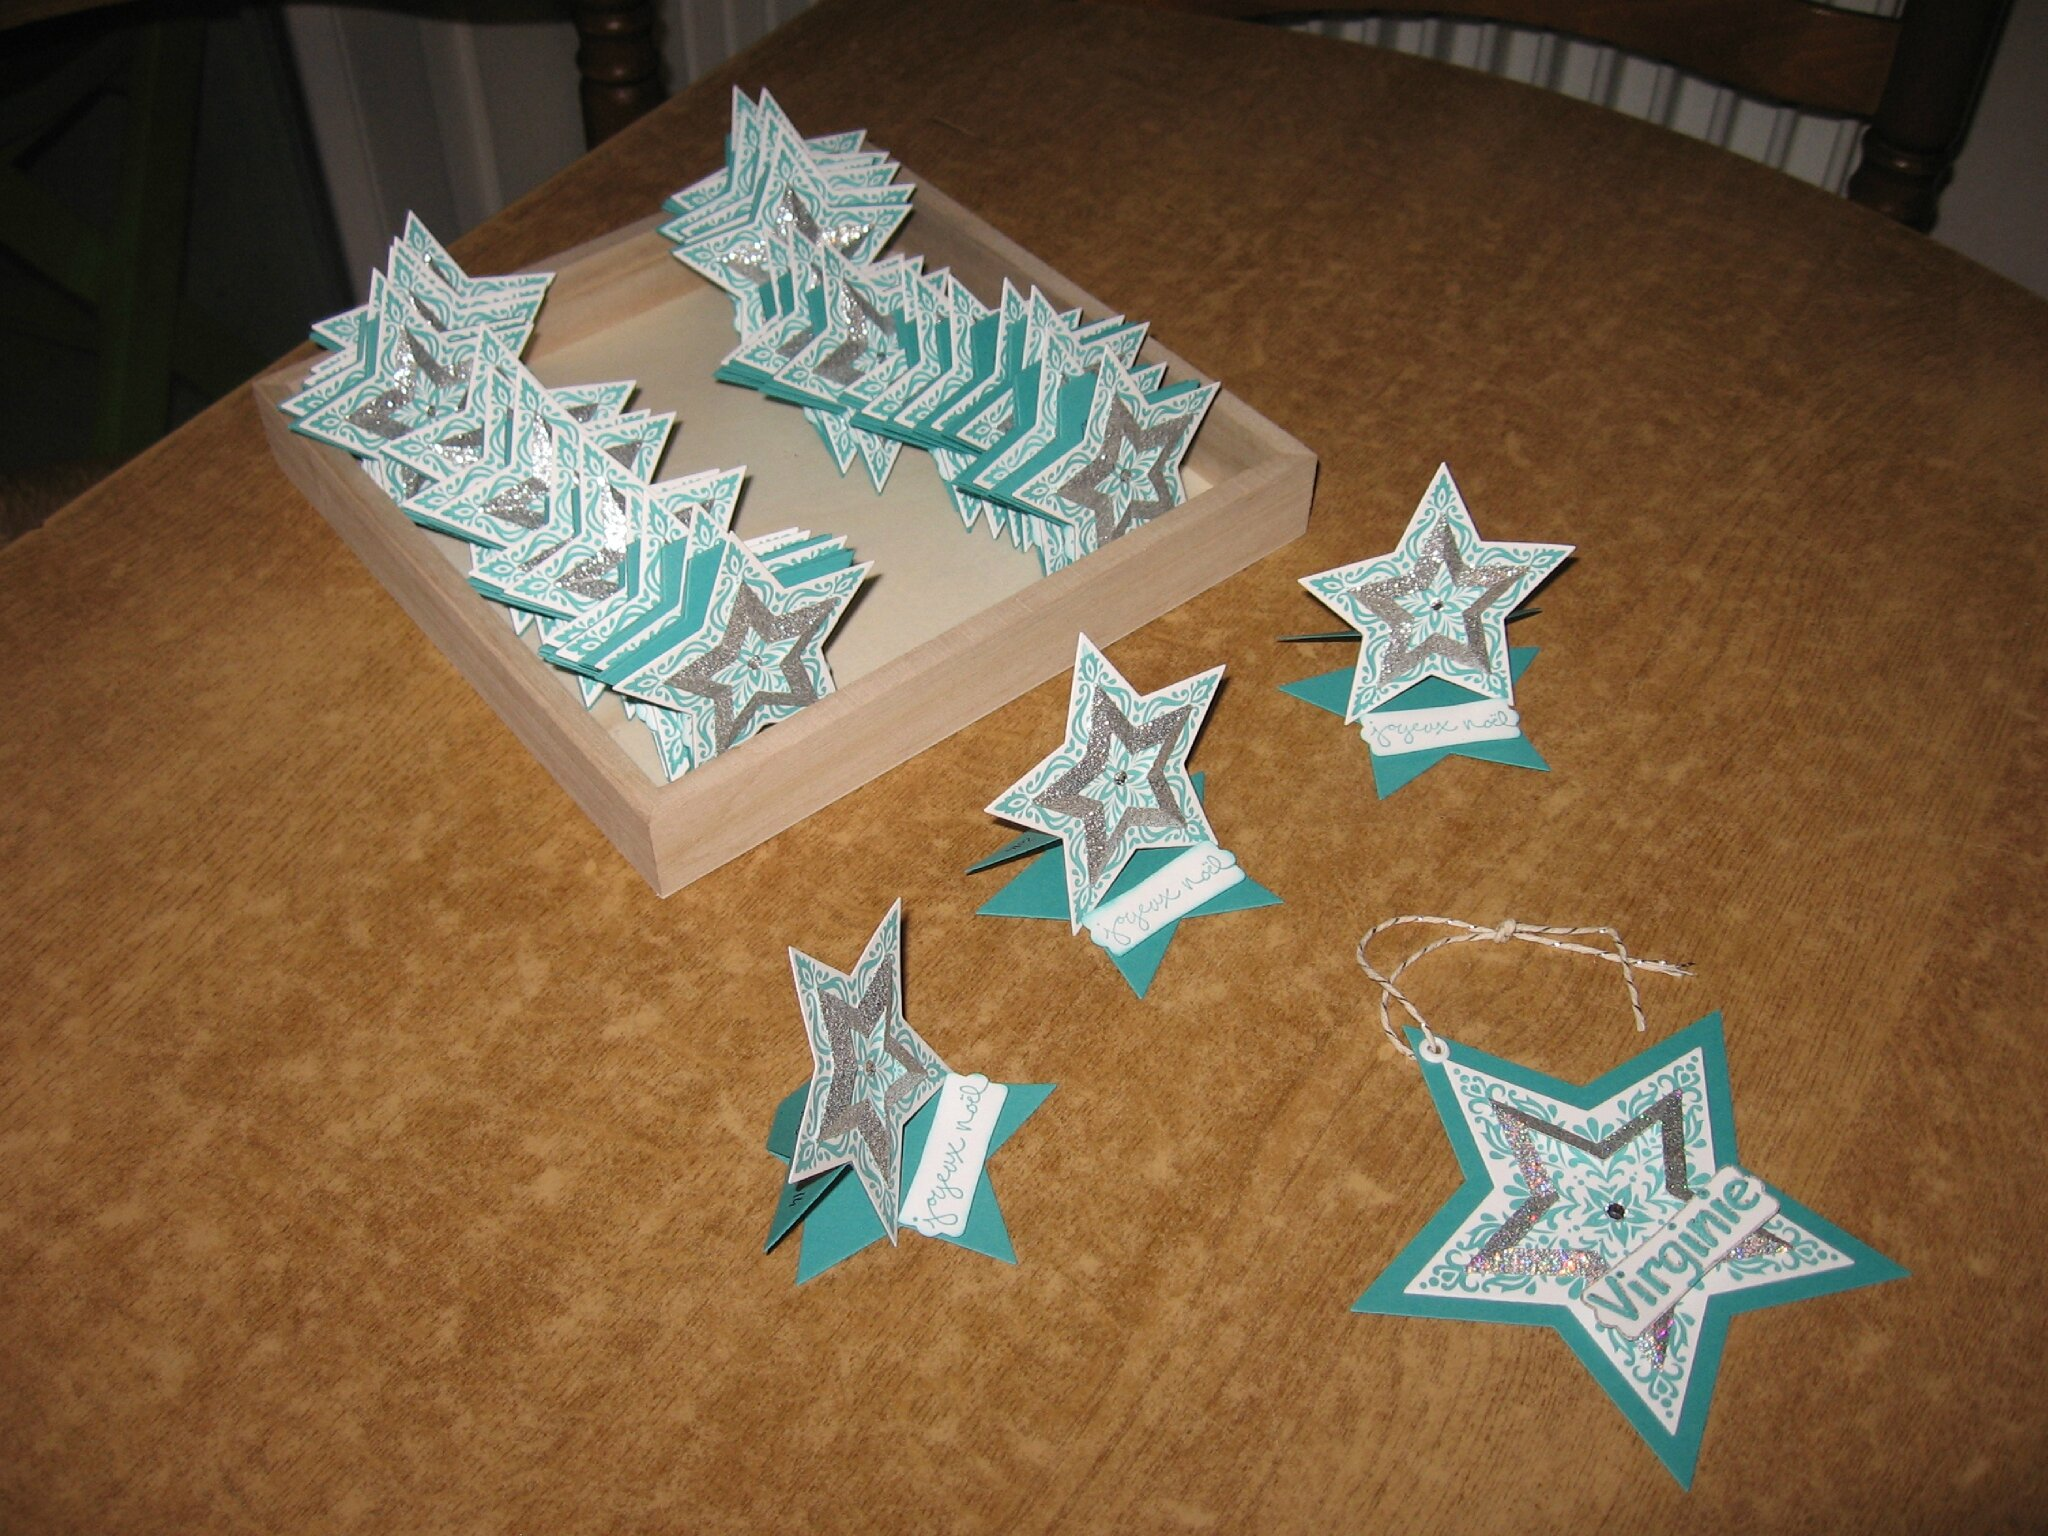 Porte Nom A Imprimer Gratuitement Of Premi Re Formation Stampin 39 Up Ninoucreas Ateliers